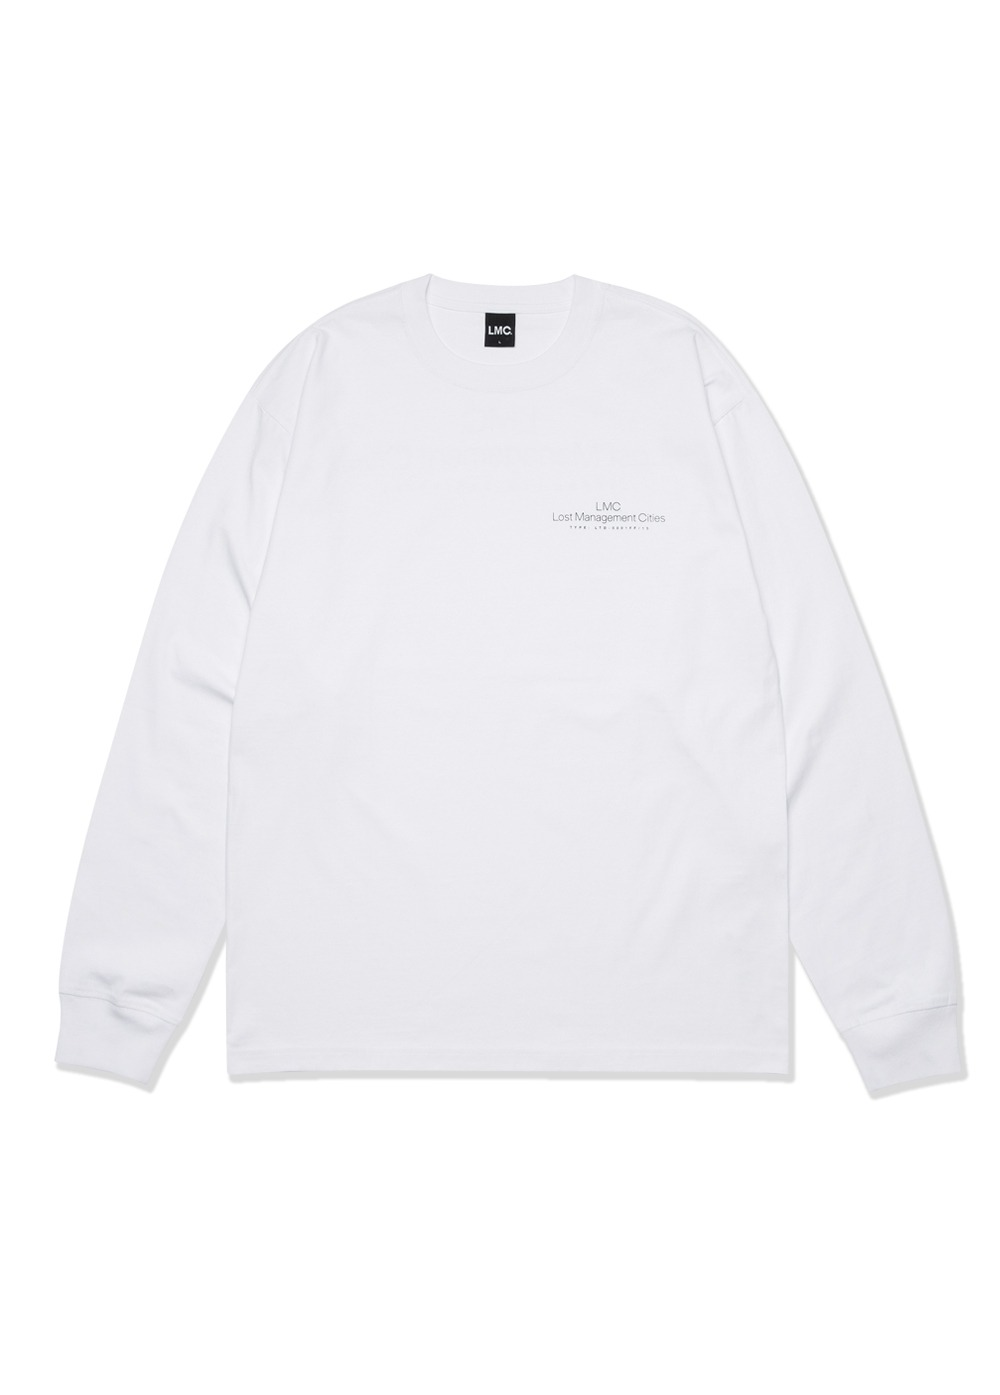 LMC THIN LOGO LONG SLV TEE white